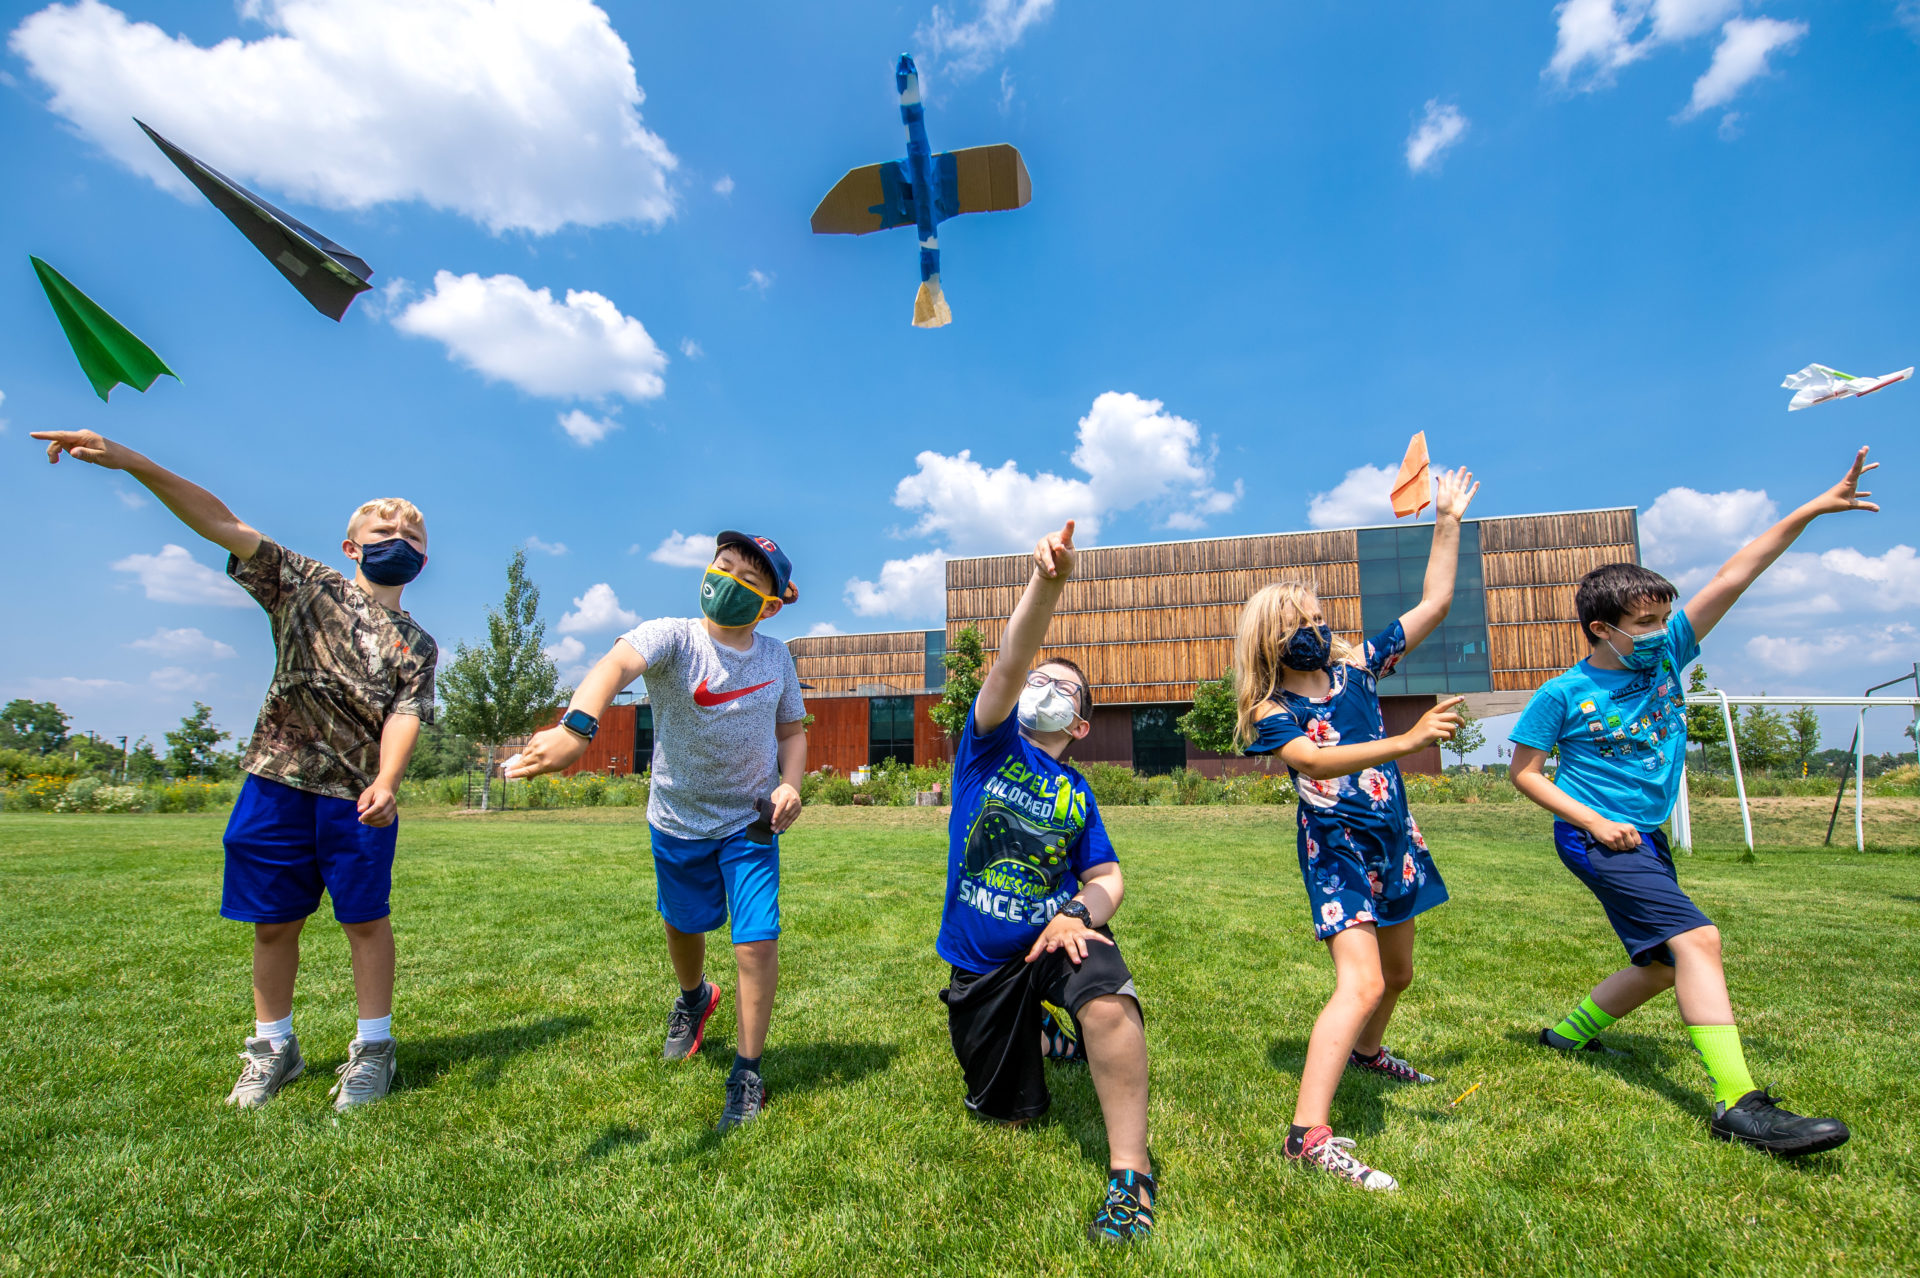 5 Children flying model and paper planes outside on grassy field